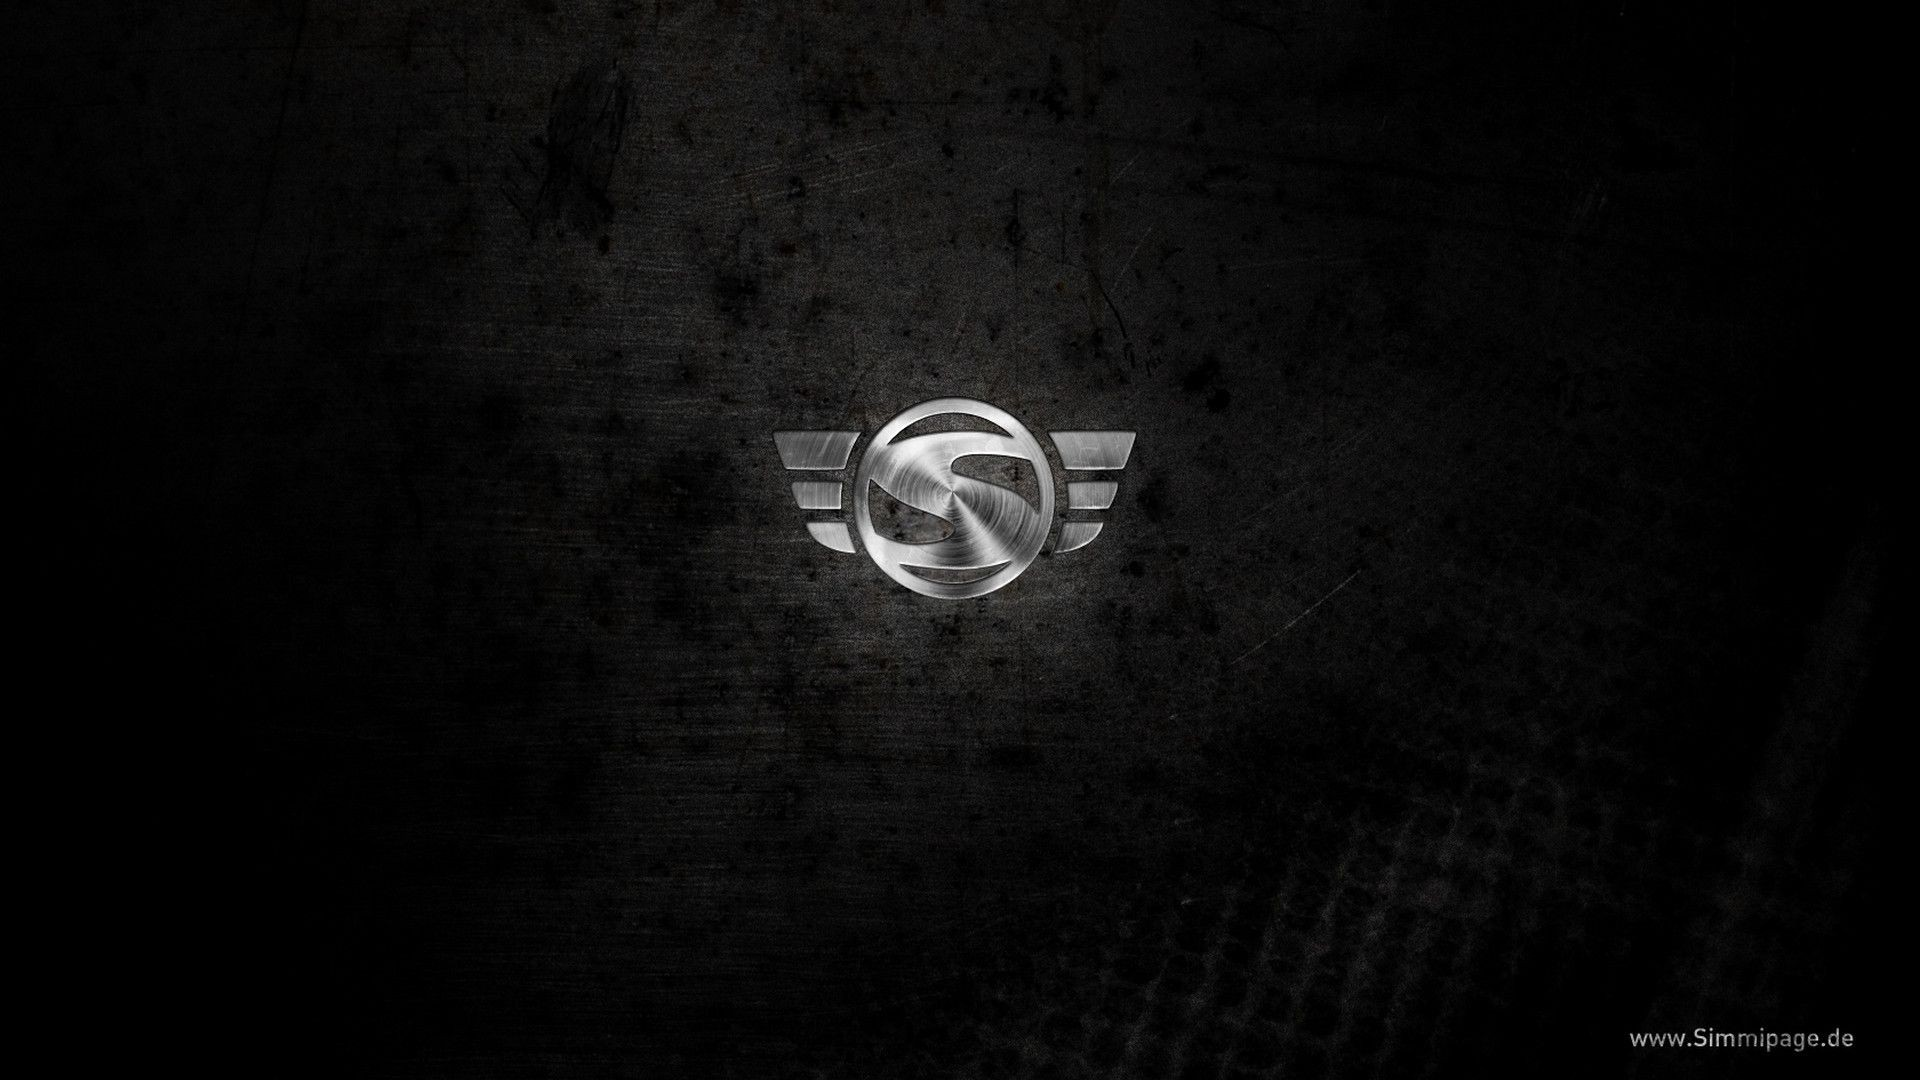 1920x1080 wallpapers for solid black wallpaper 1920x1080